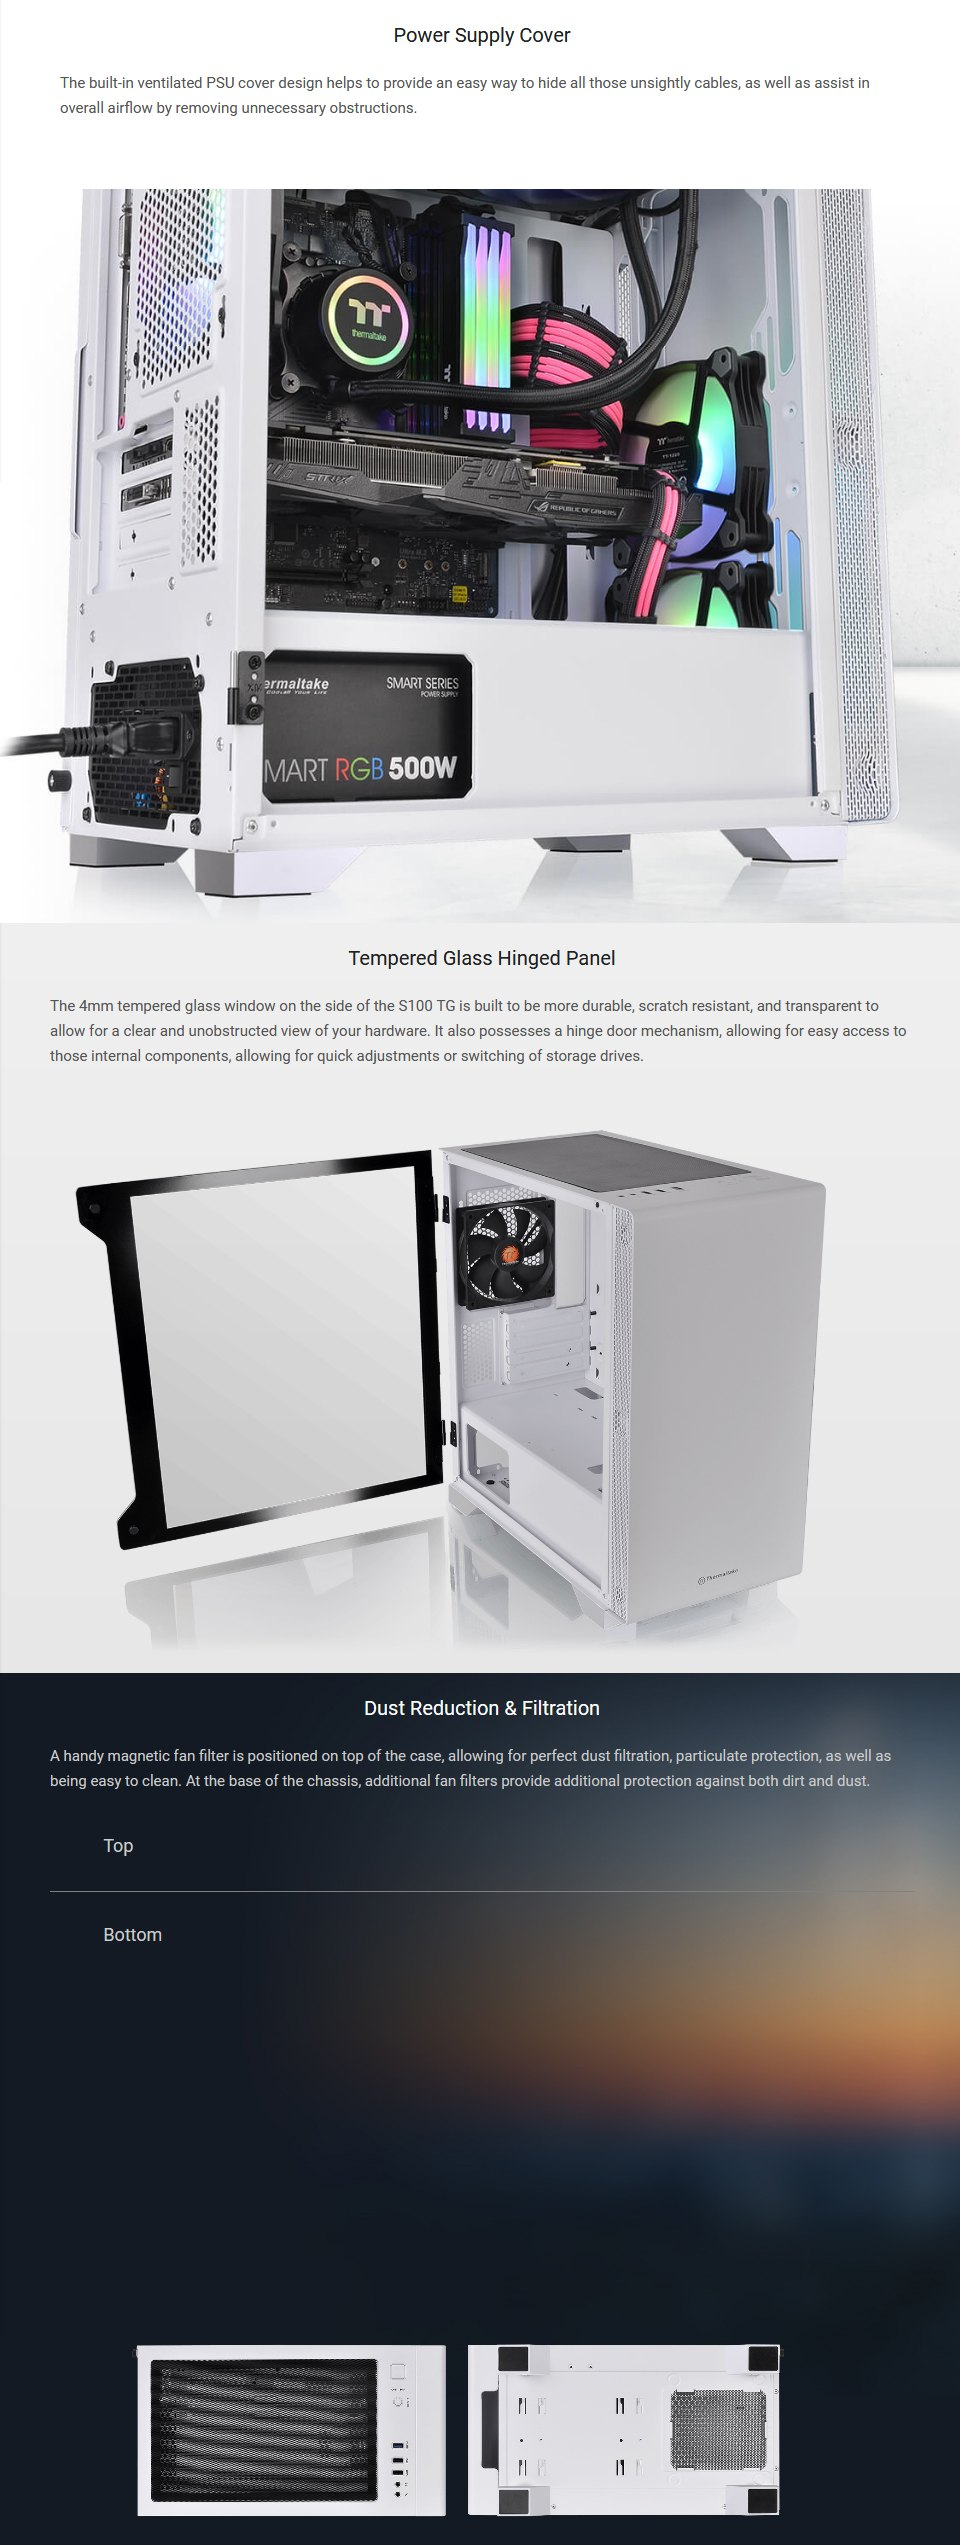 Thermaltake S100 Snow Edition Tempered Glass mATX Case features 2